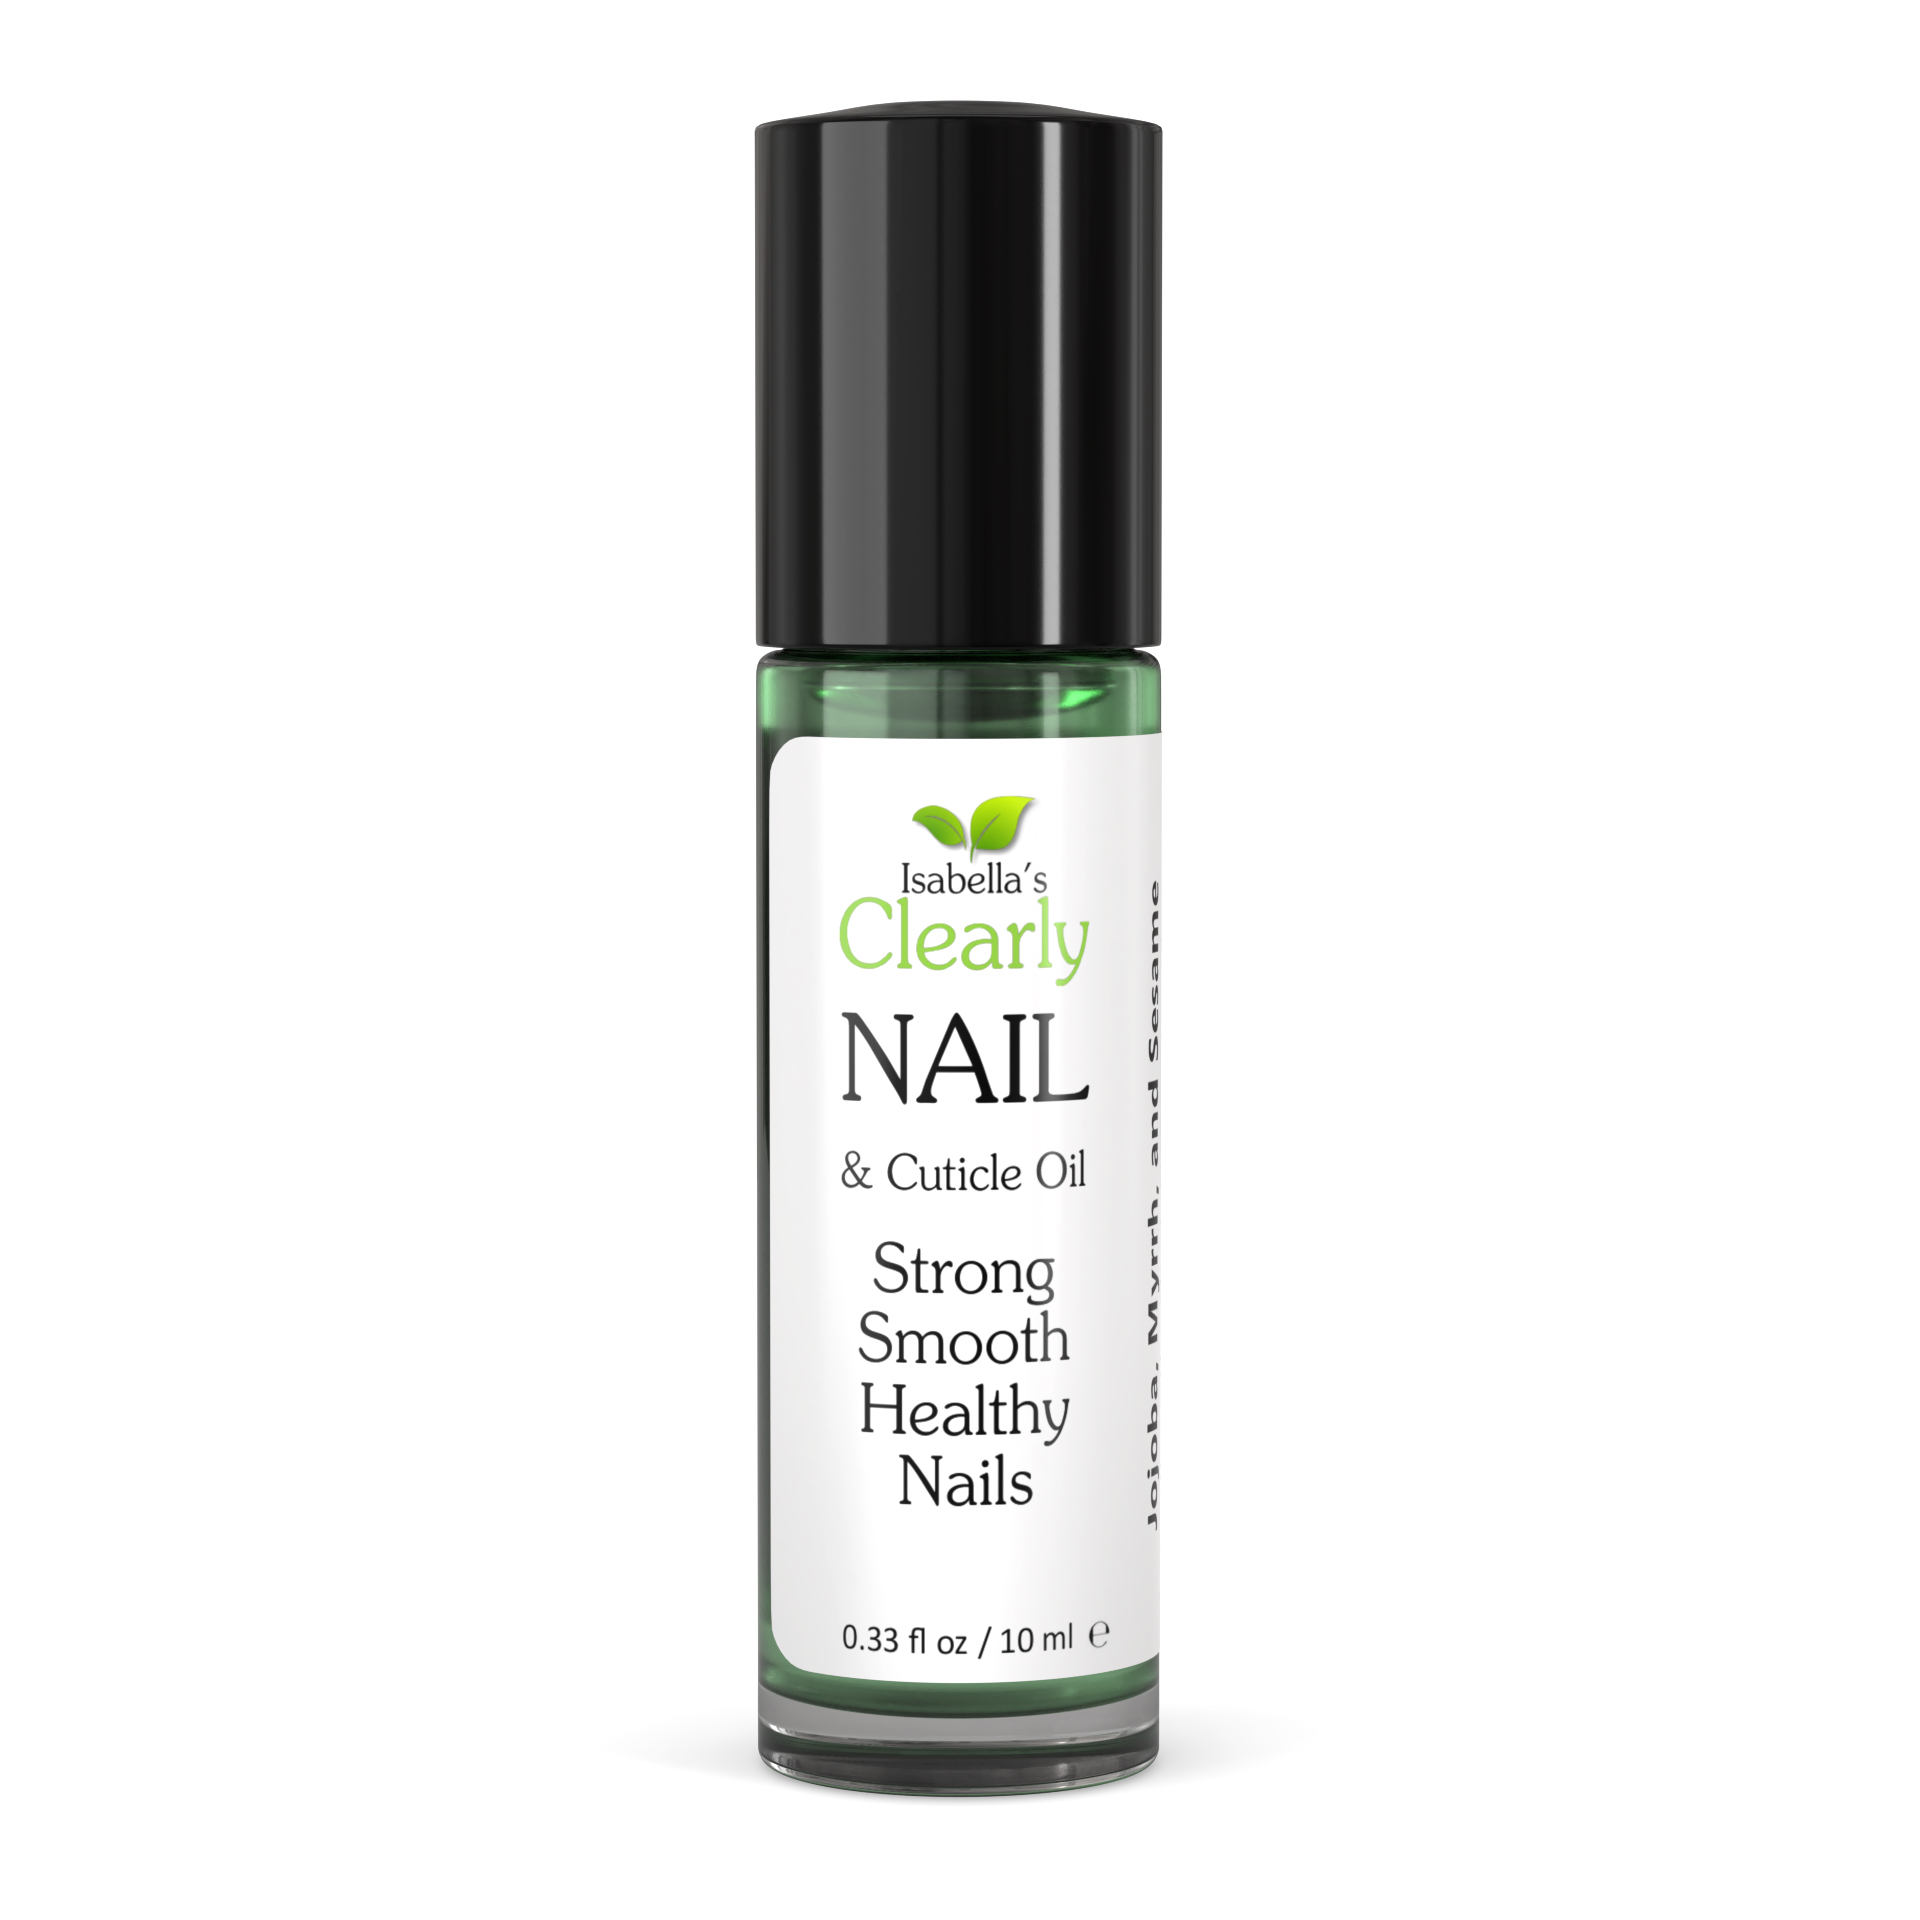 Clearly NAIL, Nail and Cuticle Oil Treatment